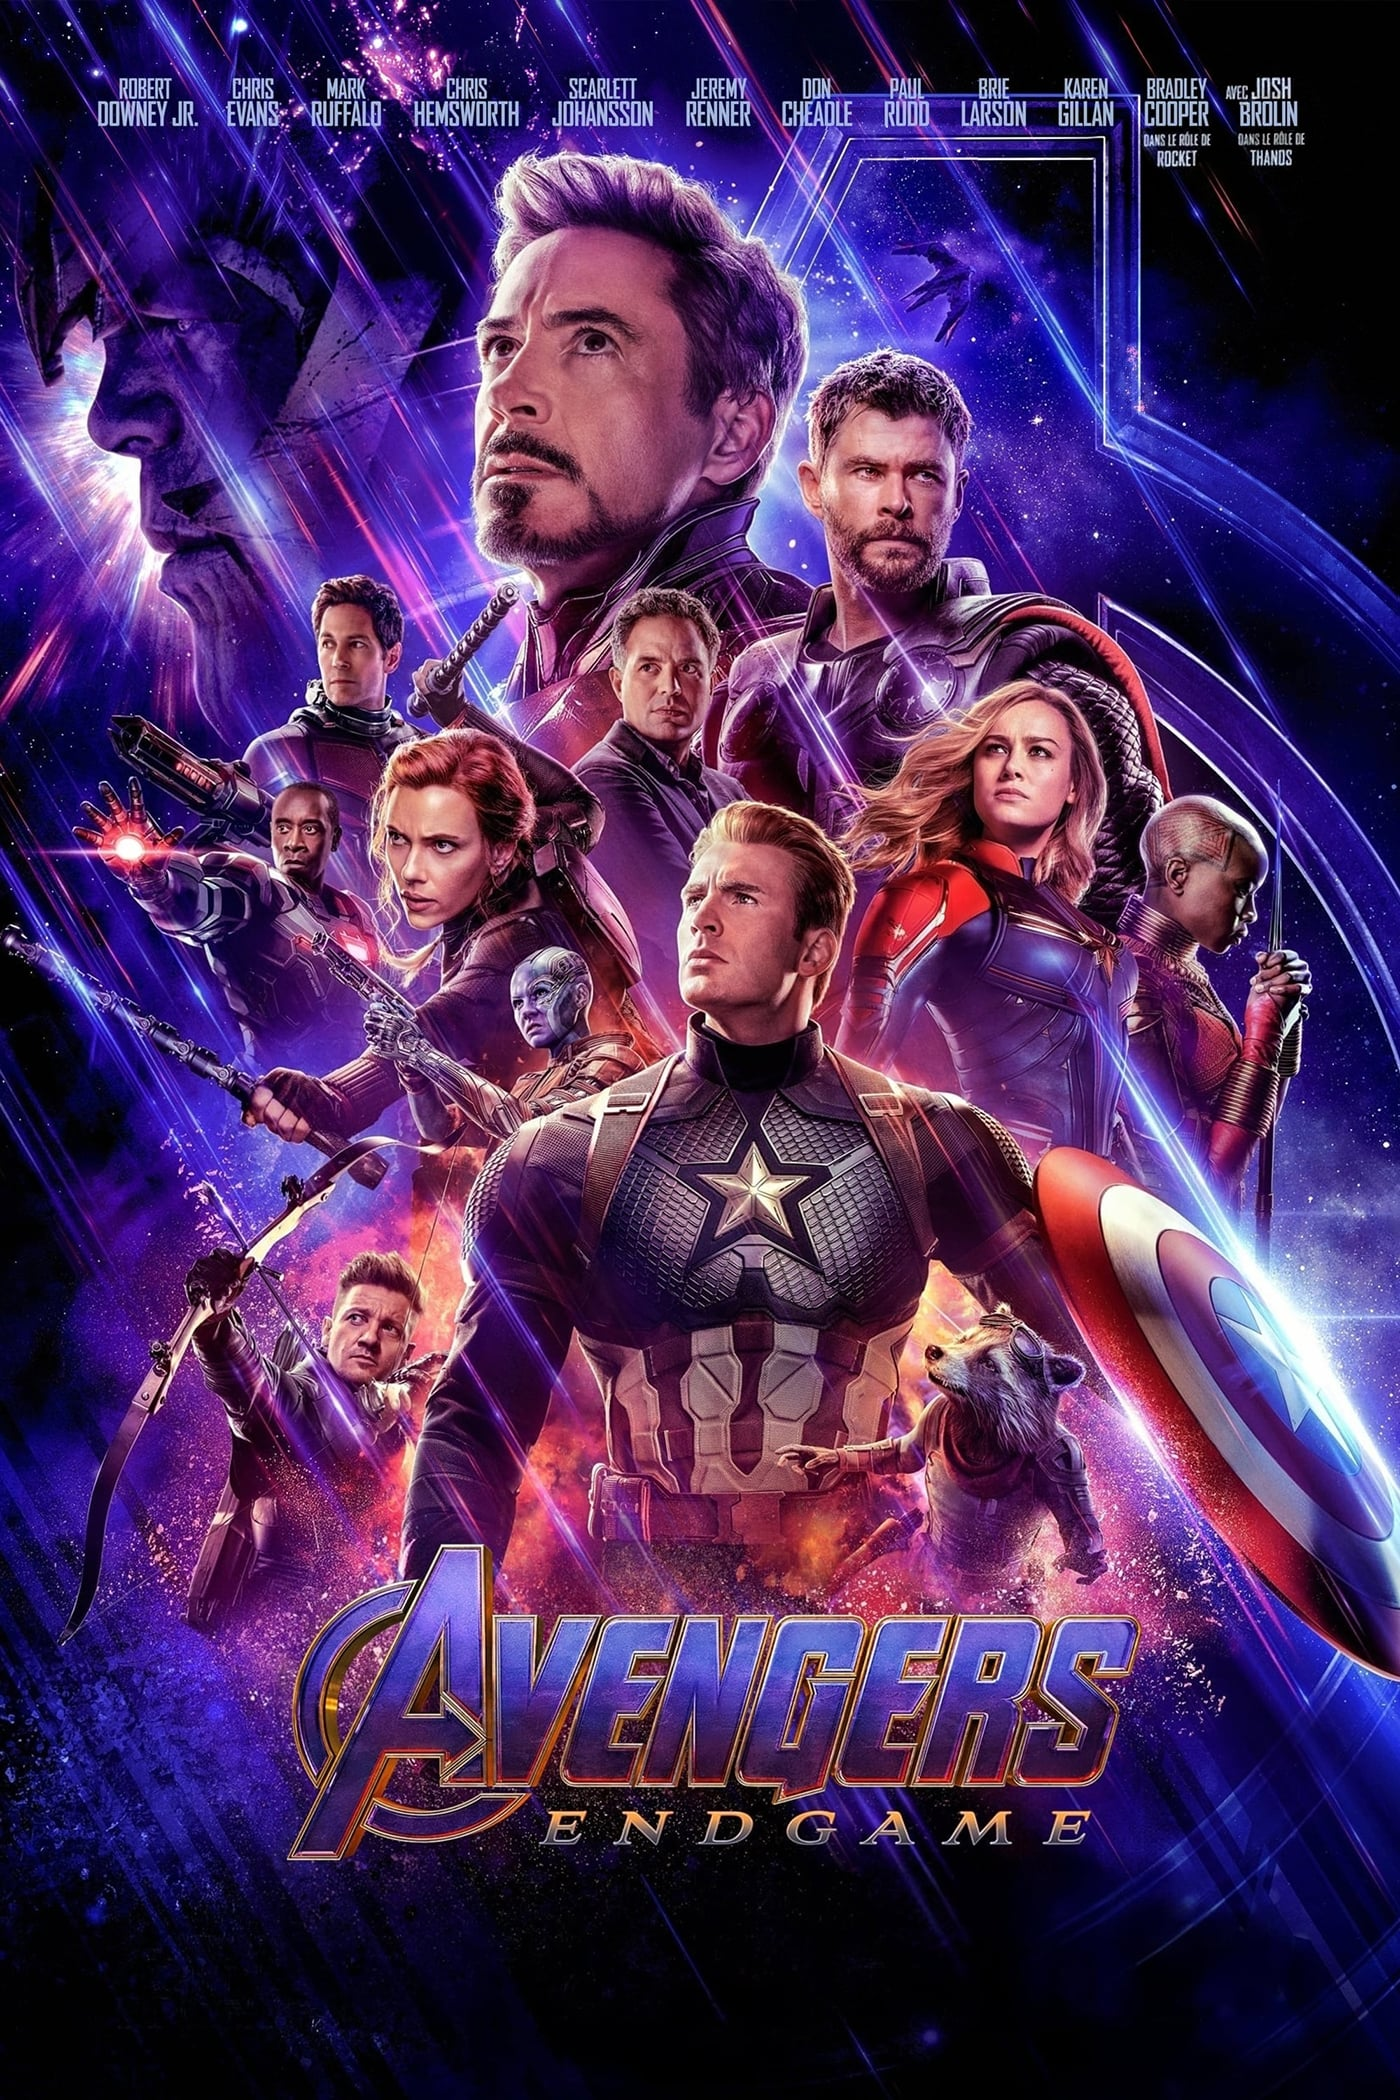 voir film Avengers : Endgame streaming